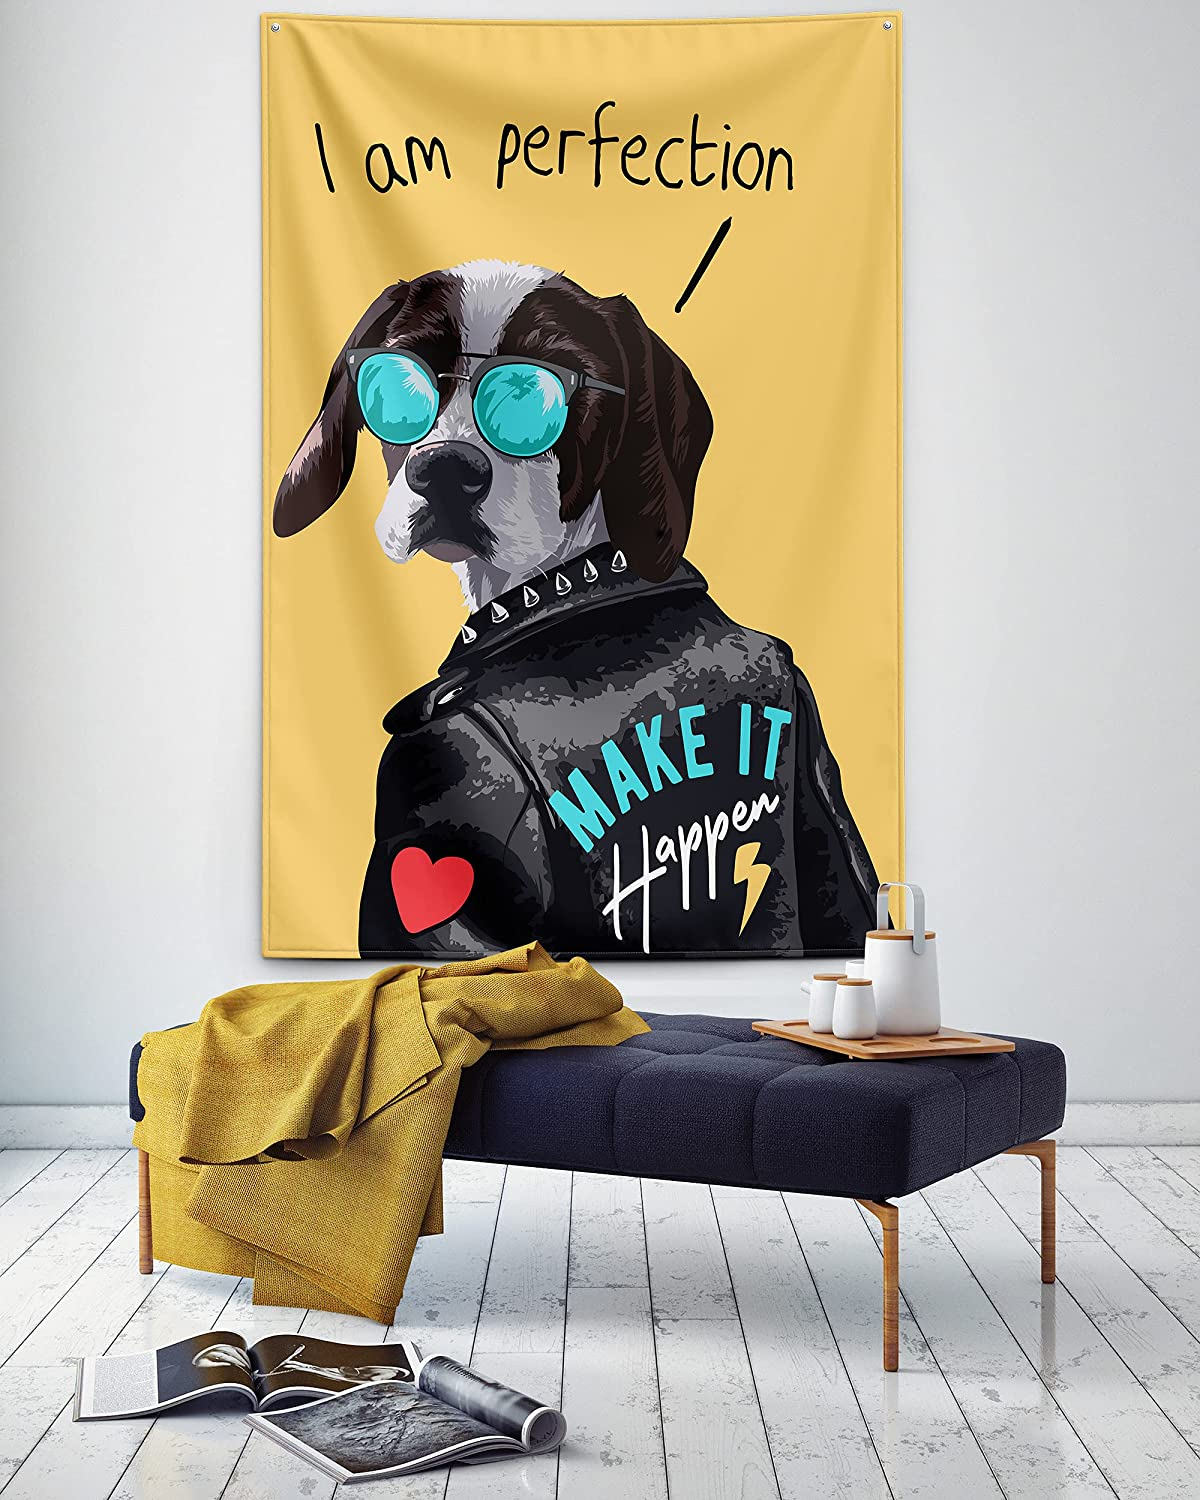 """Funny Dog Tapestry,Cool Dog Wearing Glasses Hippie Tapestry Wall Hanging,Colorful Wall Tapestry for Bedroom Aesthetic Teen Girl Boy Men Women Room Decor College Dorm Art Trippy Small Tapestry 60""""x40"""""""